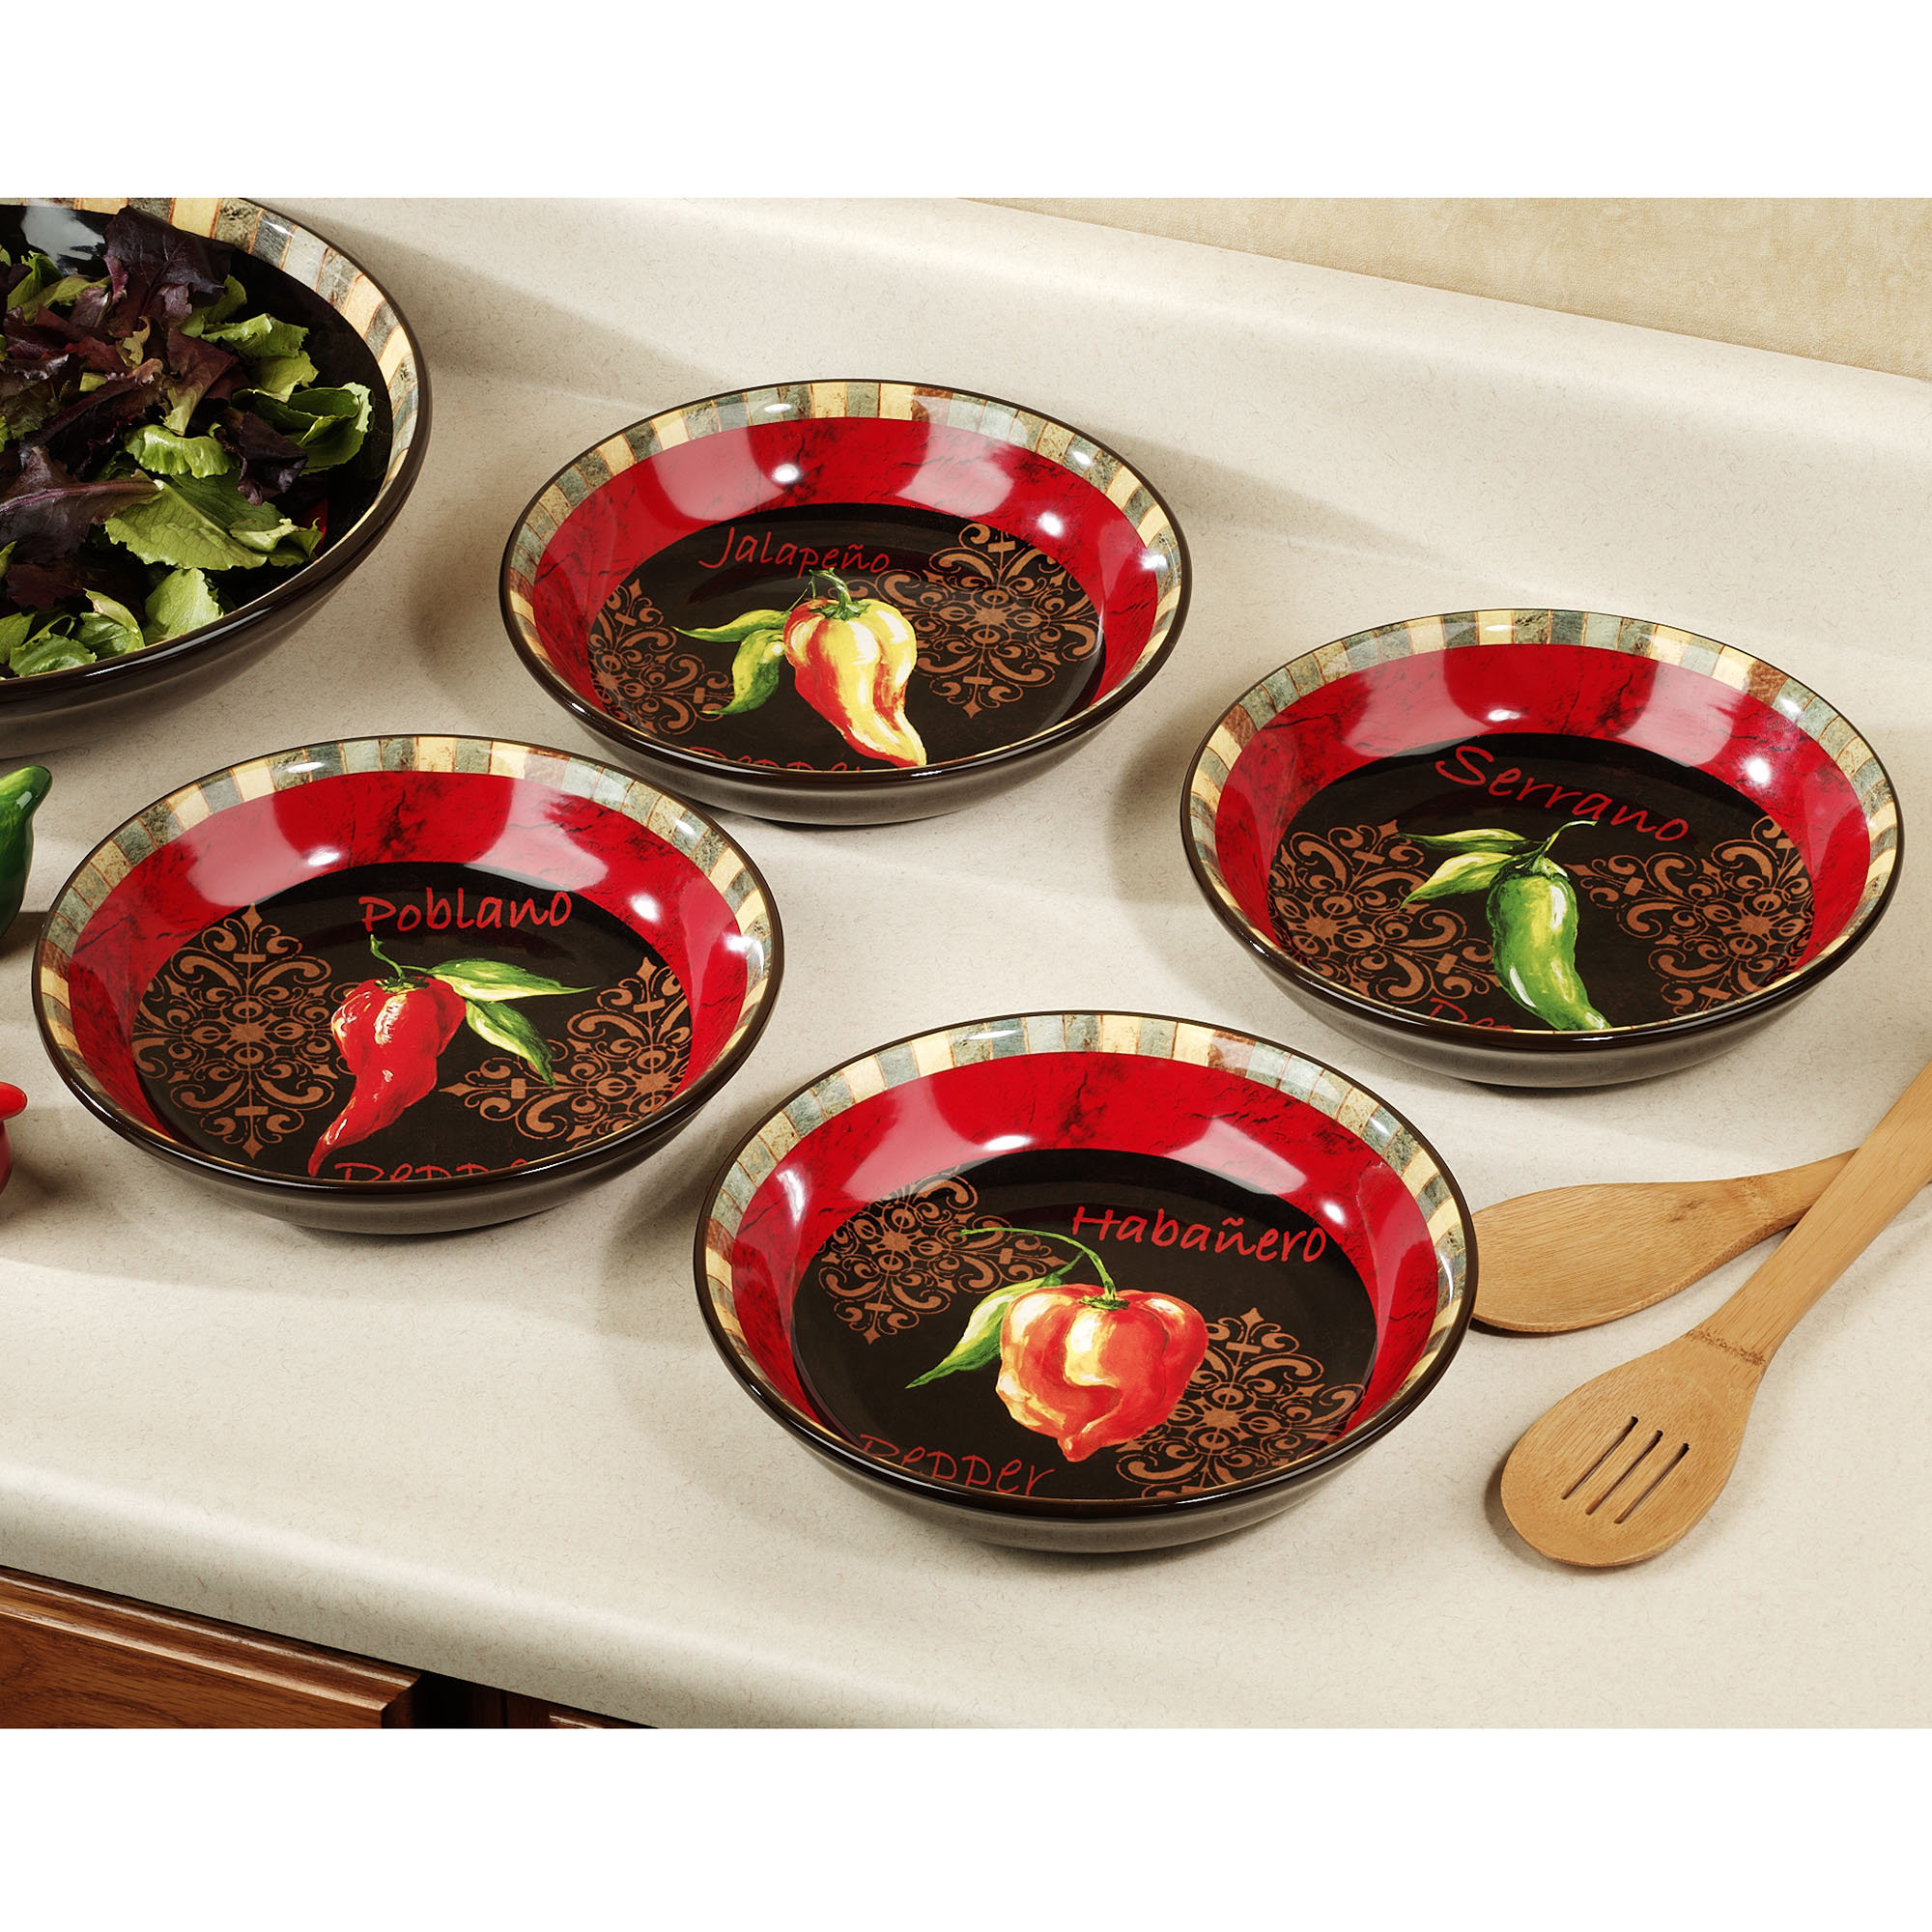 Best ideas about Chili Pepper Kitchen Decor . Save or Pin Chili pepper kitchen towels Now.